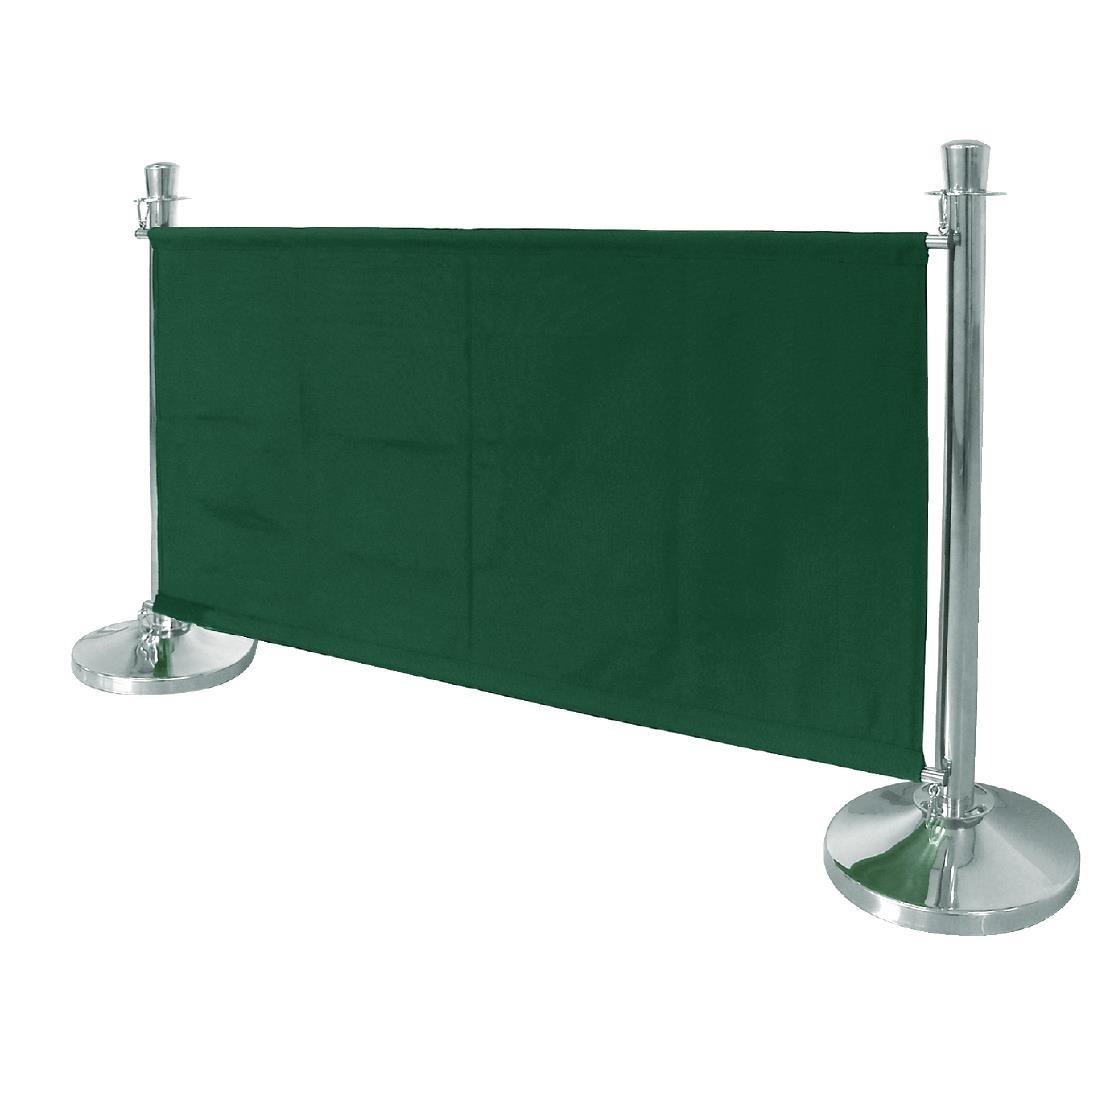 Bolero Barrier Systems